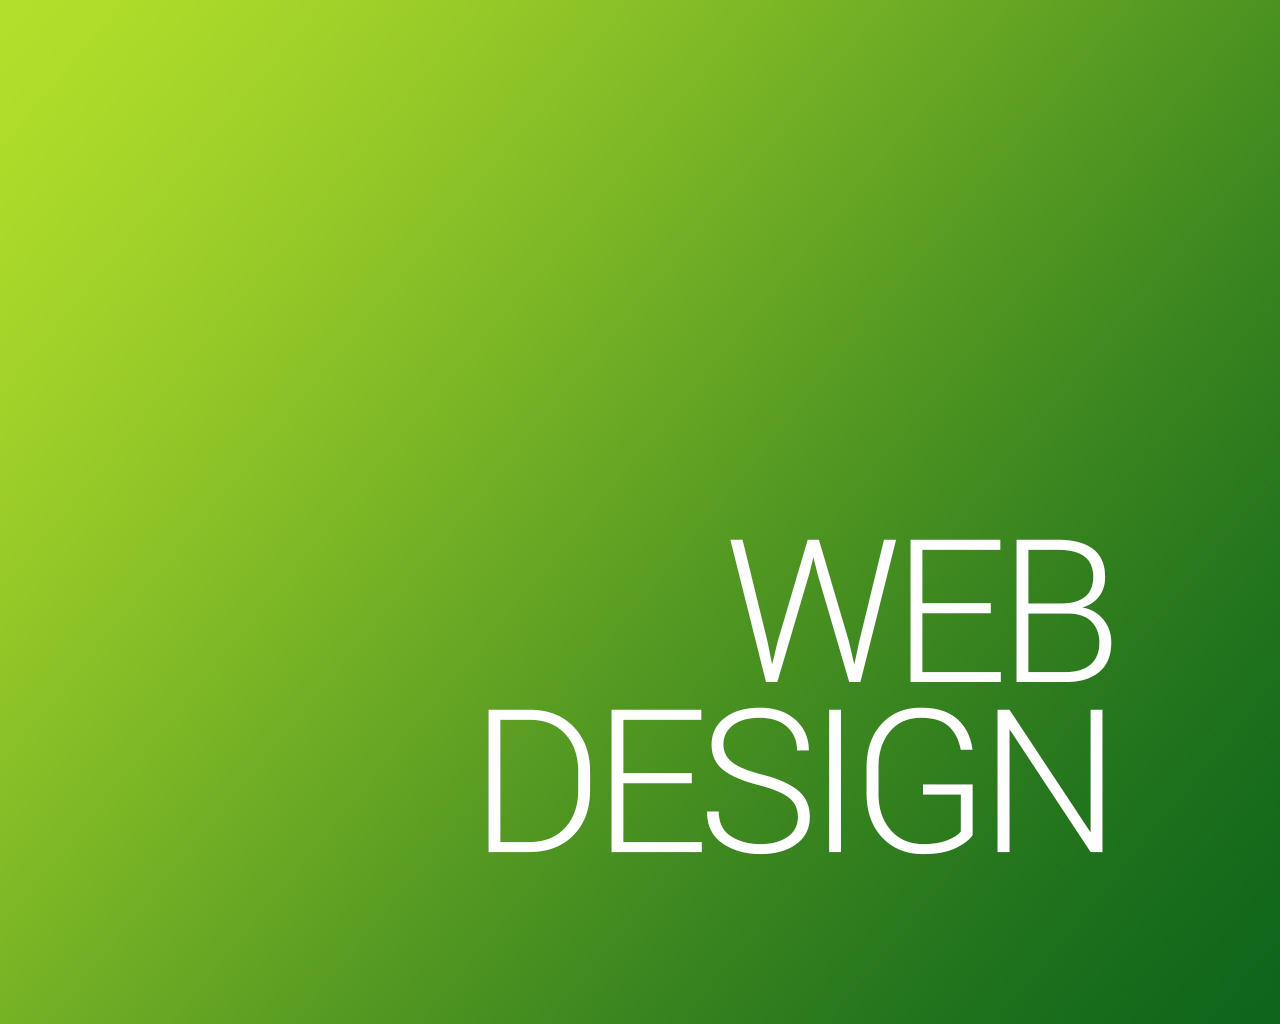 Creative And Professional Web Design by SpireetStudios - 97601